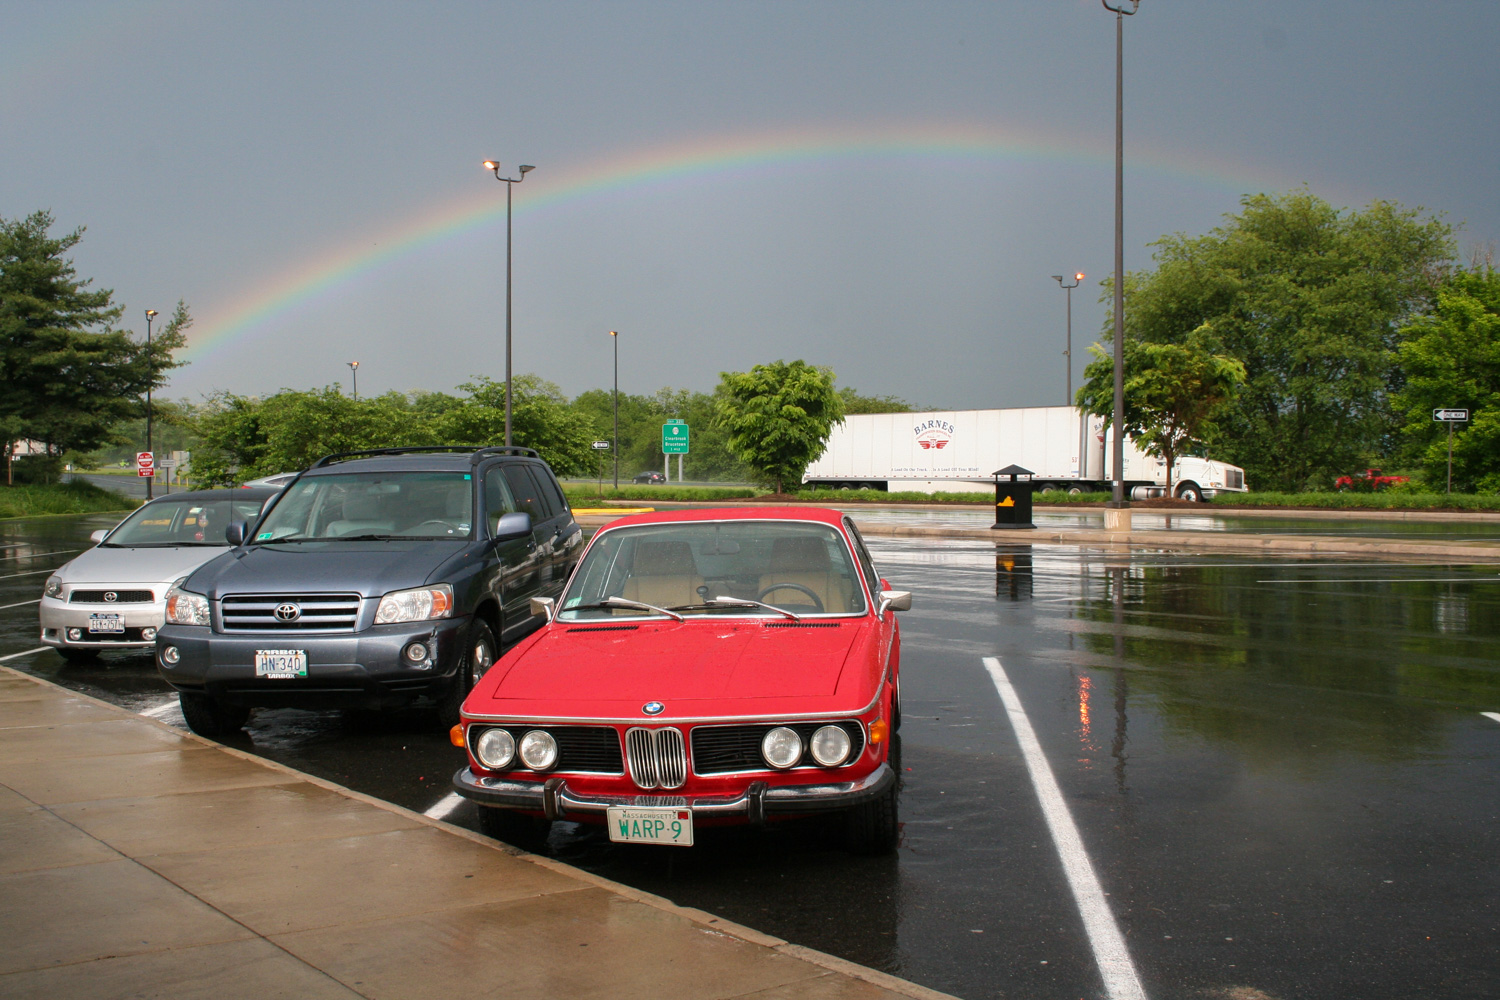 A brief rainbow-punctuated respite during The Great Drenching Event of 2013. BMW